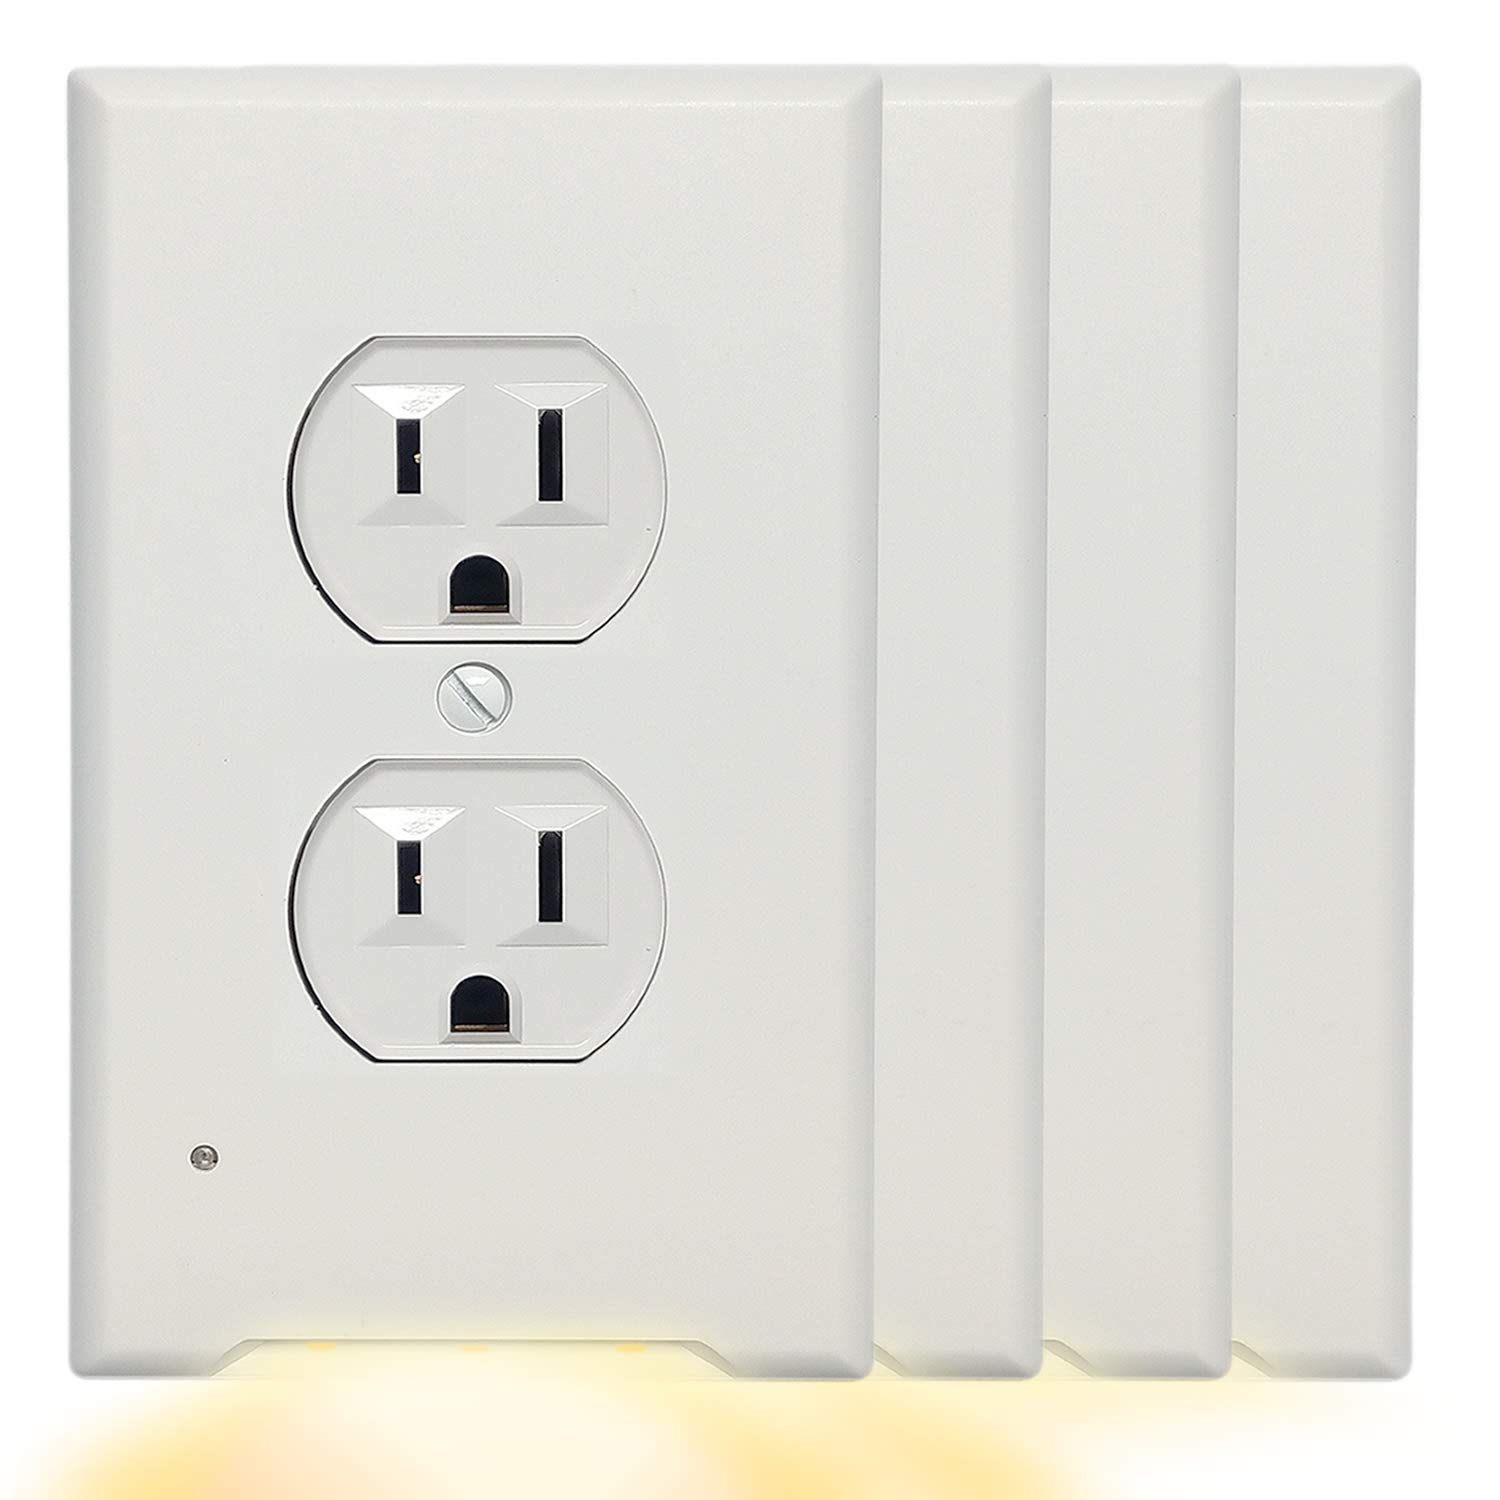 4Pack Wall Outlet Cover Plate With 3000K Warm White LED Night Light-No Wires Or Batteries,Light Sensor Auto Guidelight,Install easy,0.3W High Brightness LED,For Duplex Outlet,Unsuitable Decor,GFCI